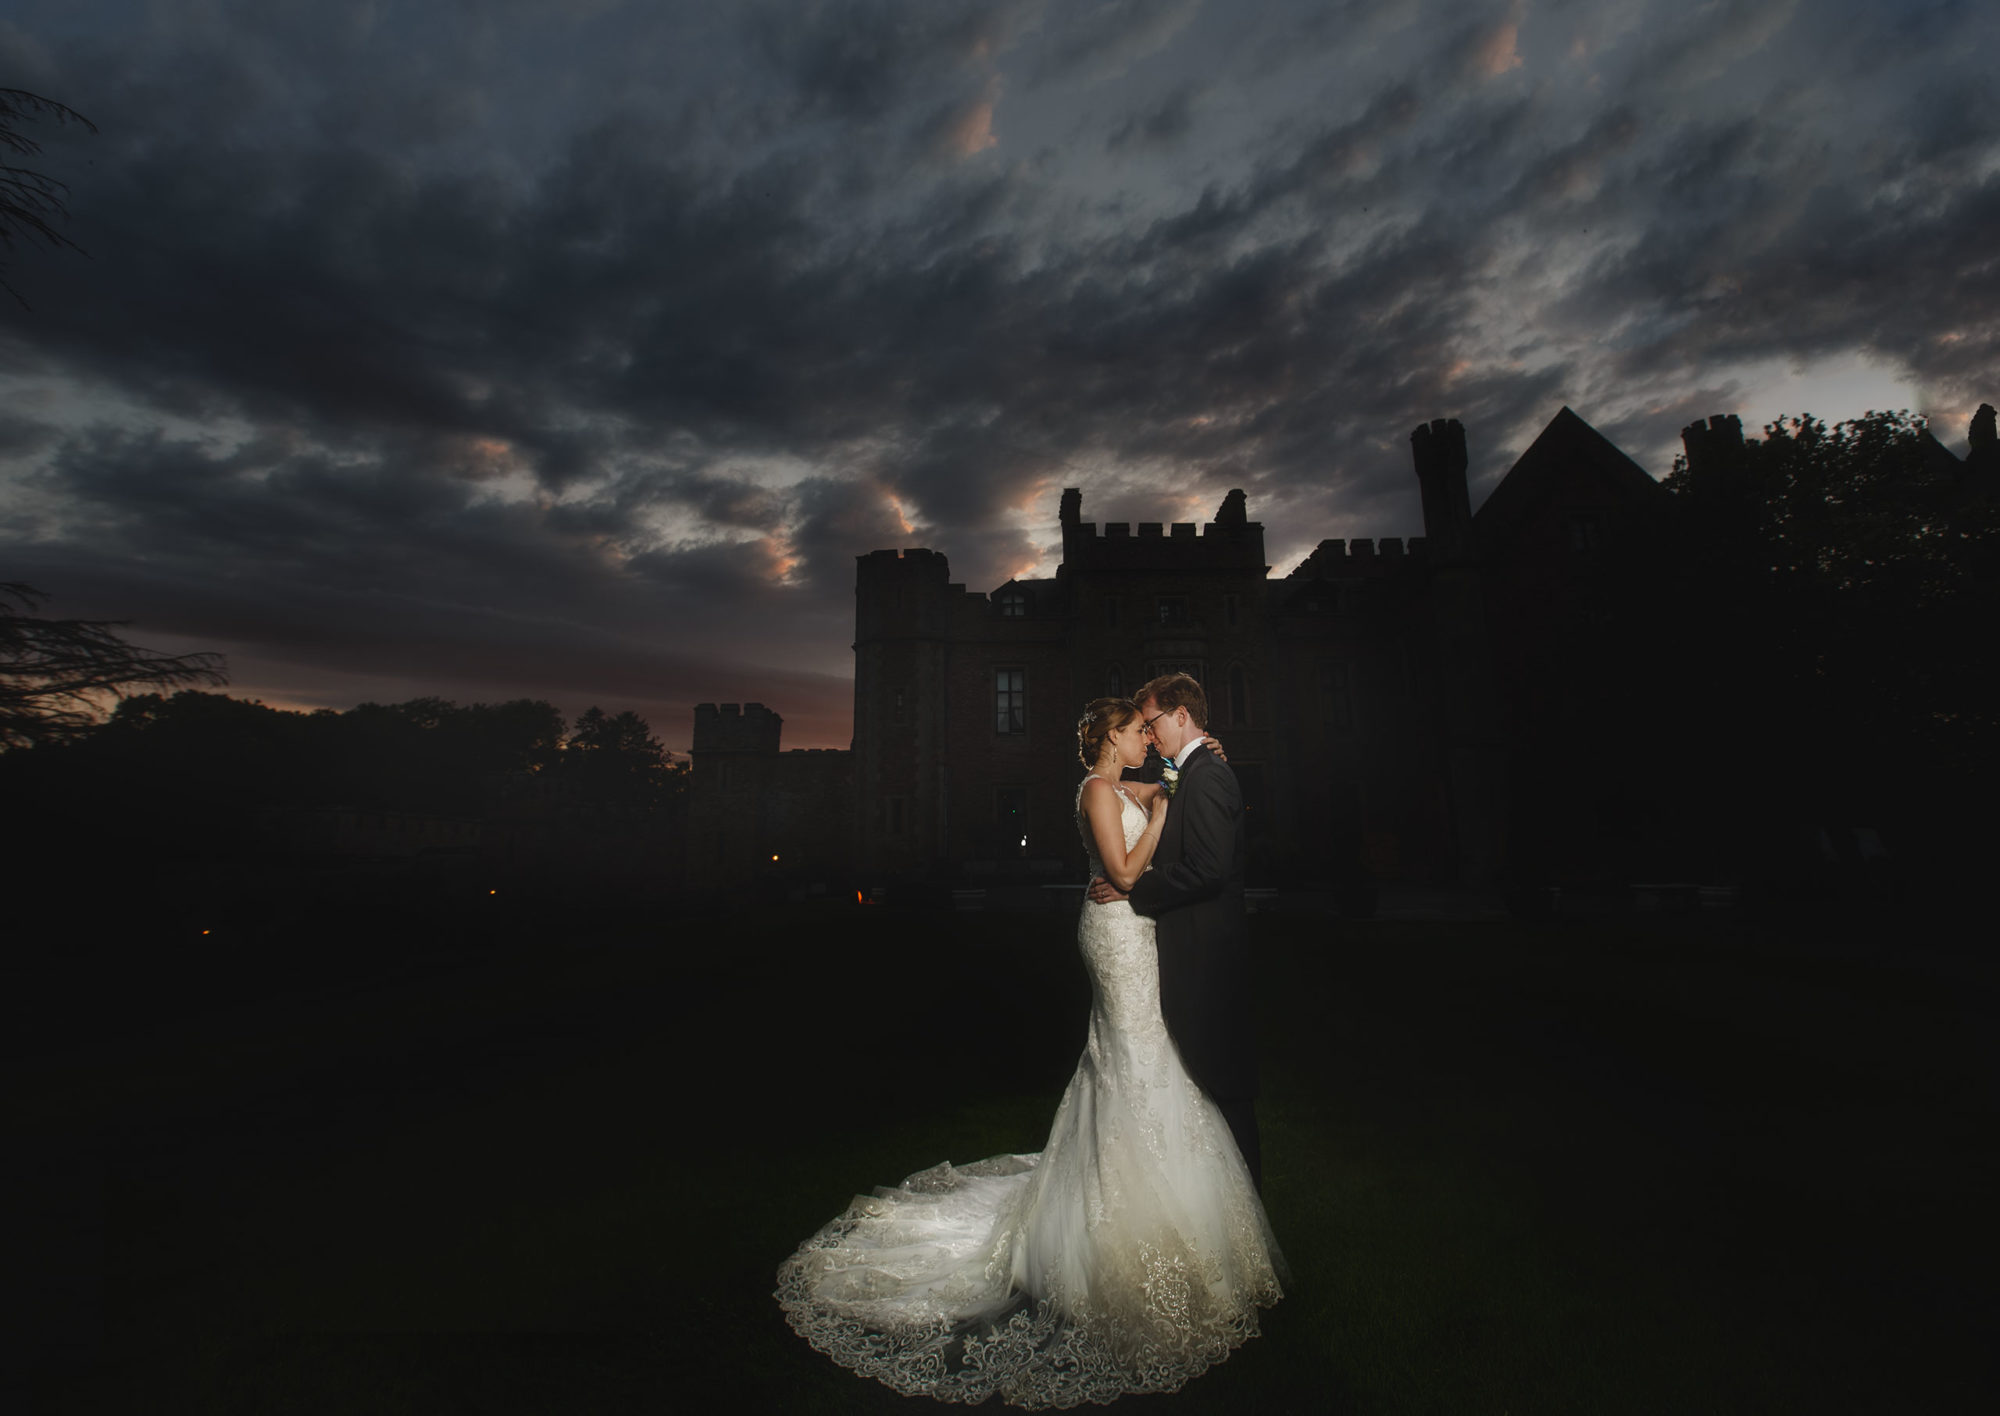 rowton castle is the perfect setting for the bride and groom